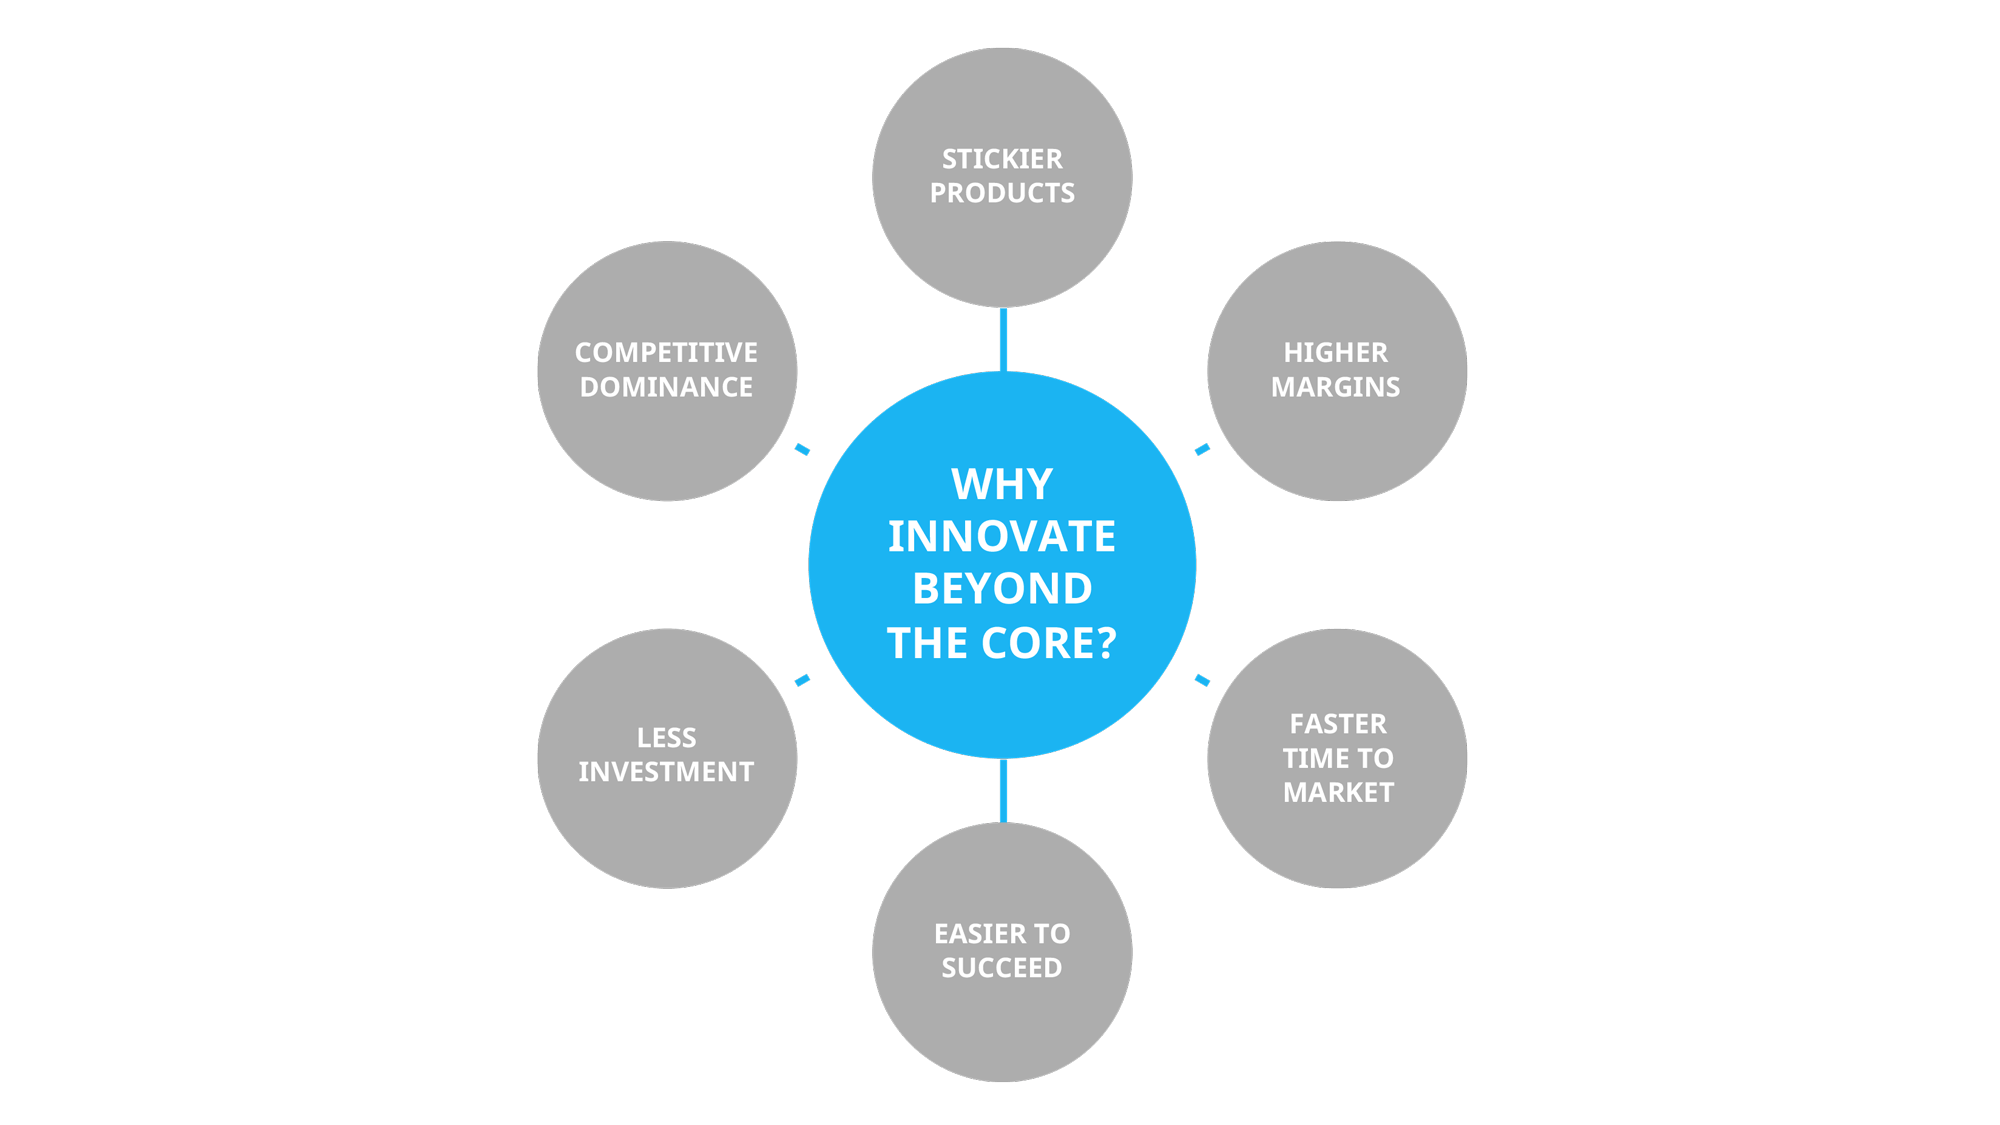 Why innovate beyond the core - benefits of augmented product innovation